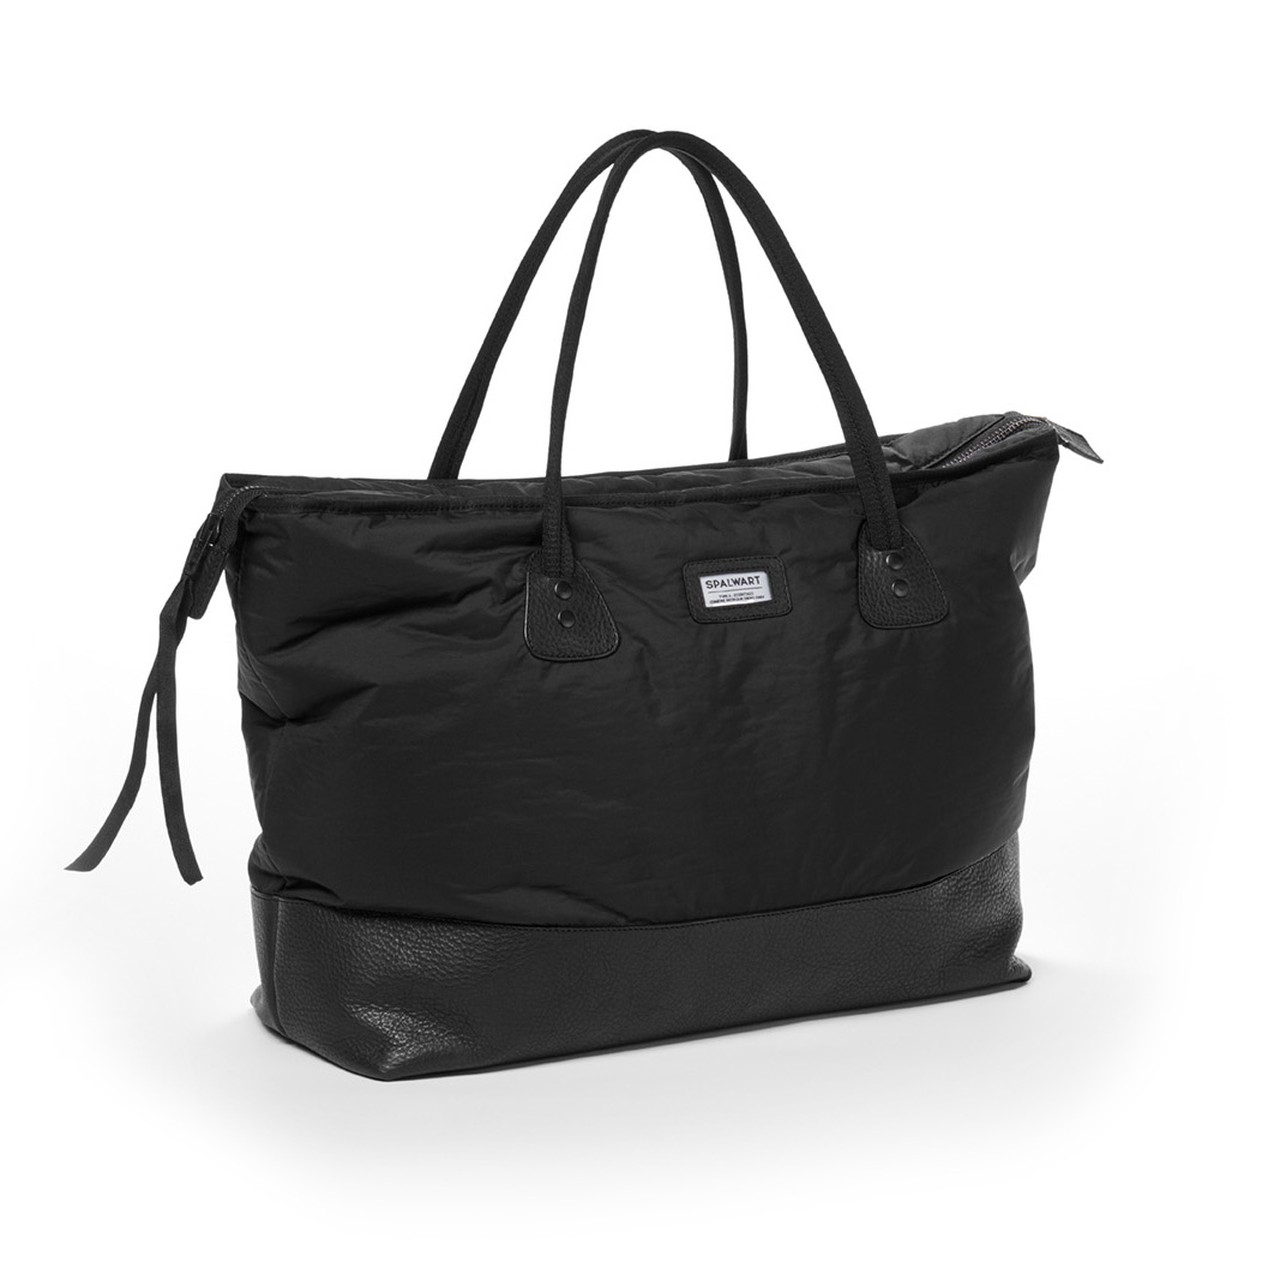 Spalwart Team Official Gym Bag in Black